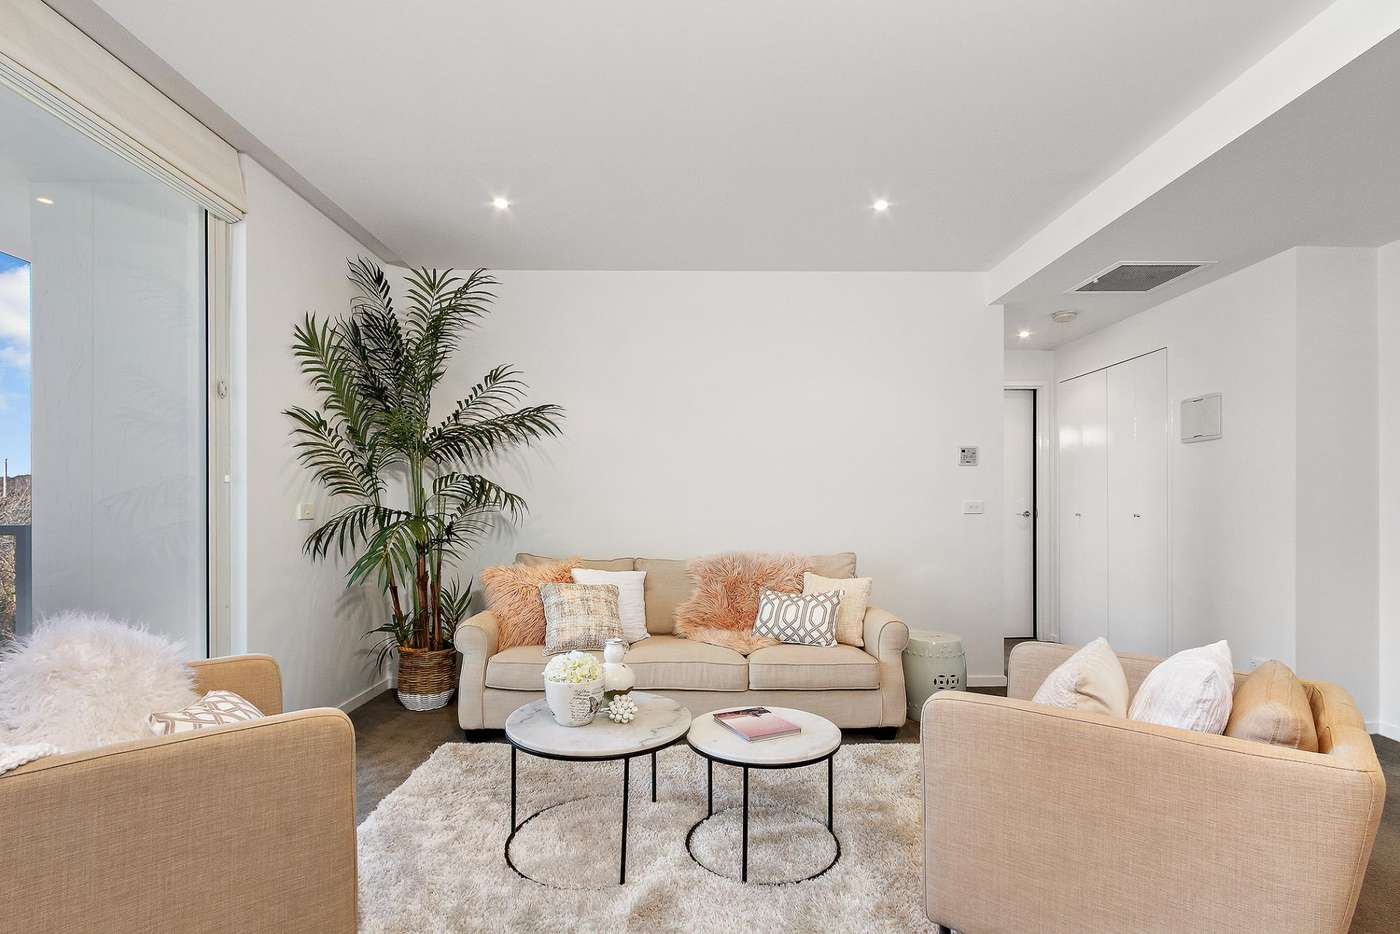 Sixth view of Homely apartment listing, 31/41 Blackall Street, Barton ACT 2600